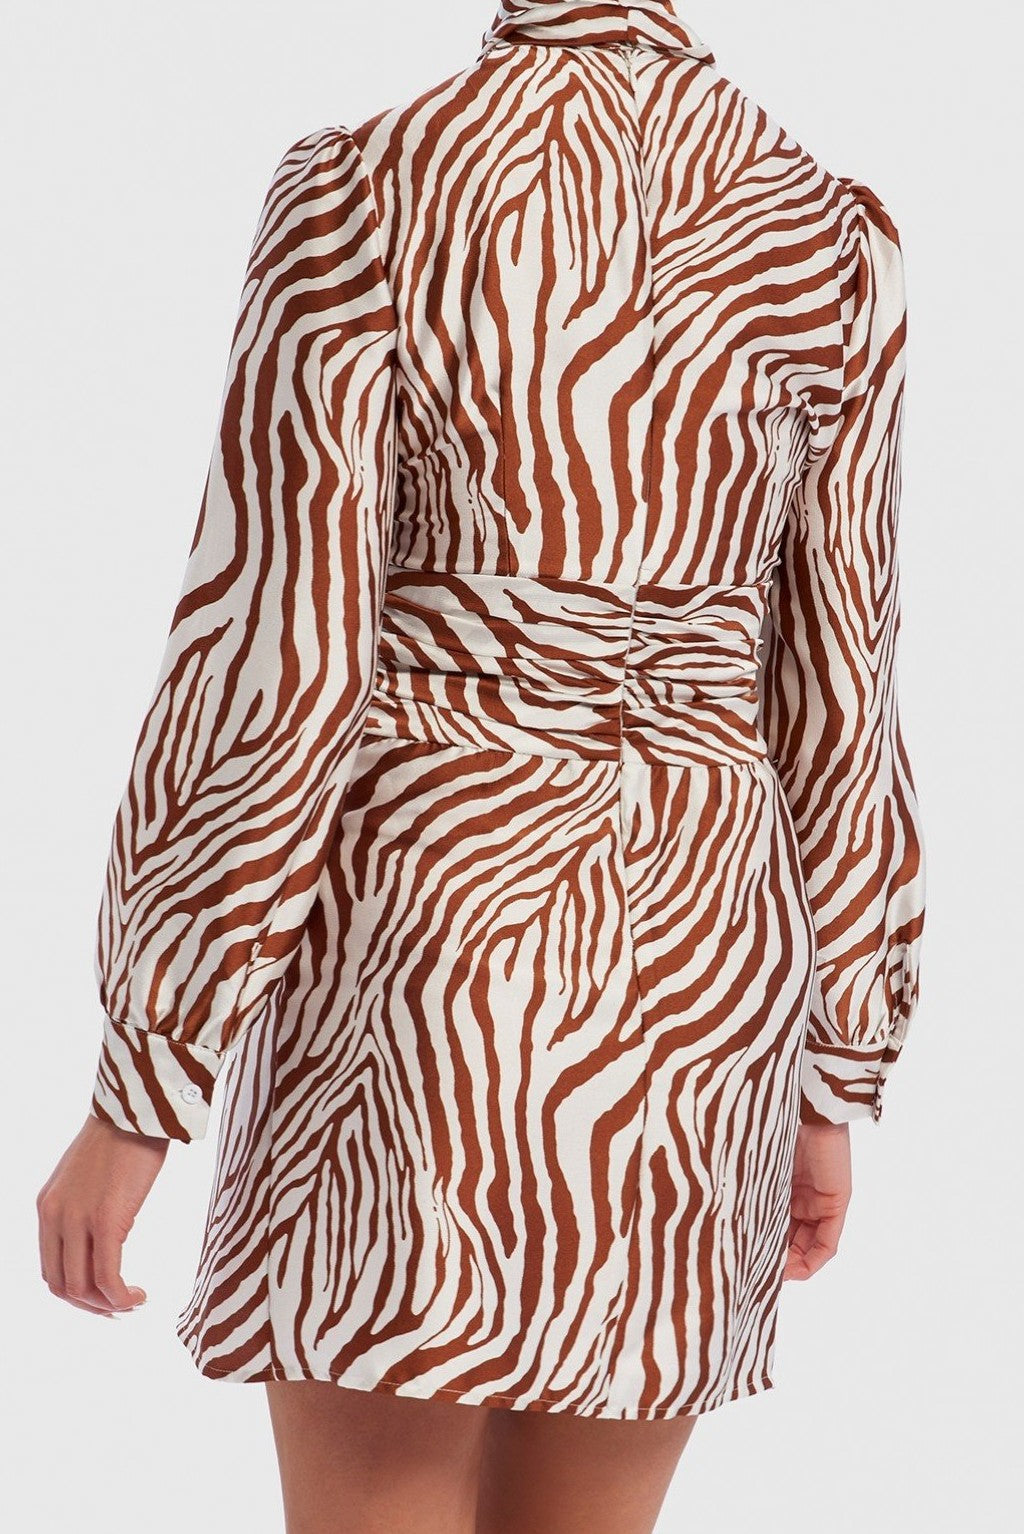 U COLLECTION ZEBRA PRINT PUSSYBOW SATIN MINI DRESS - WHITE/TAN